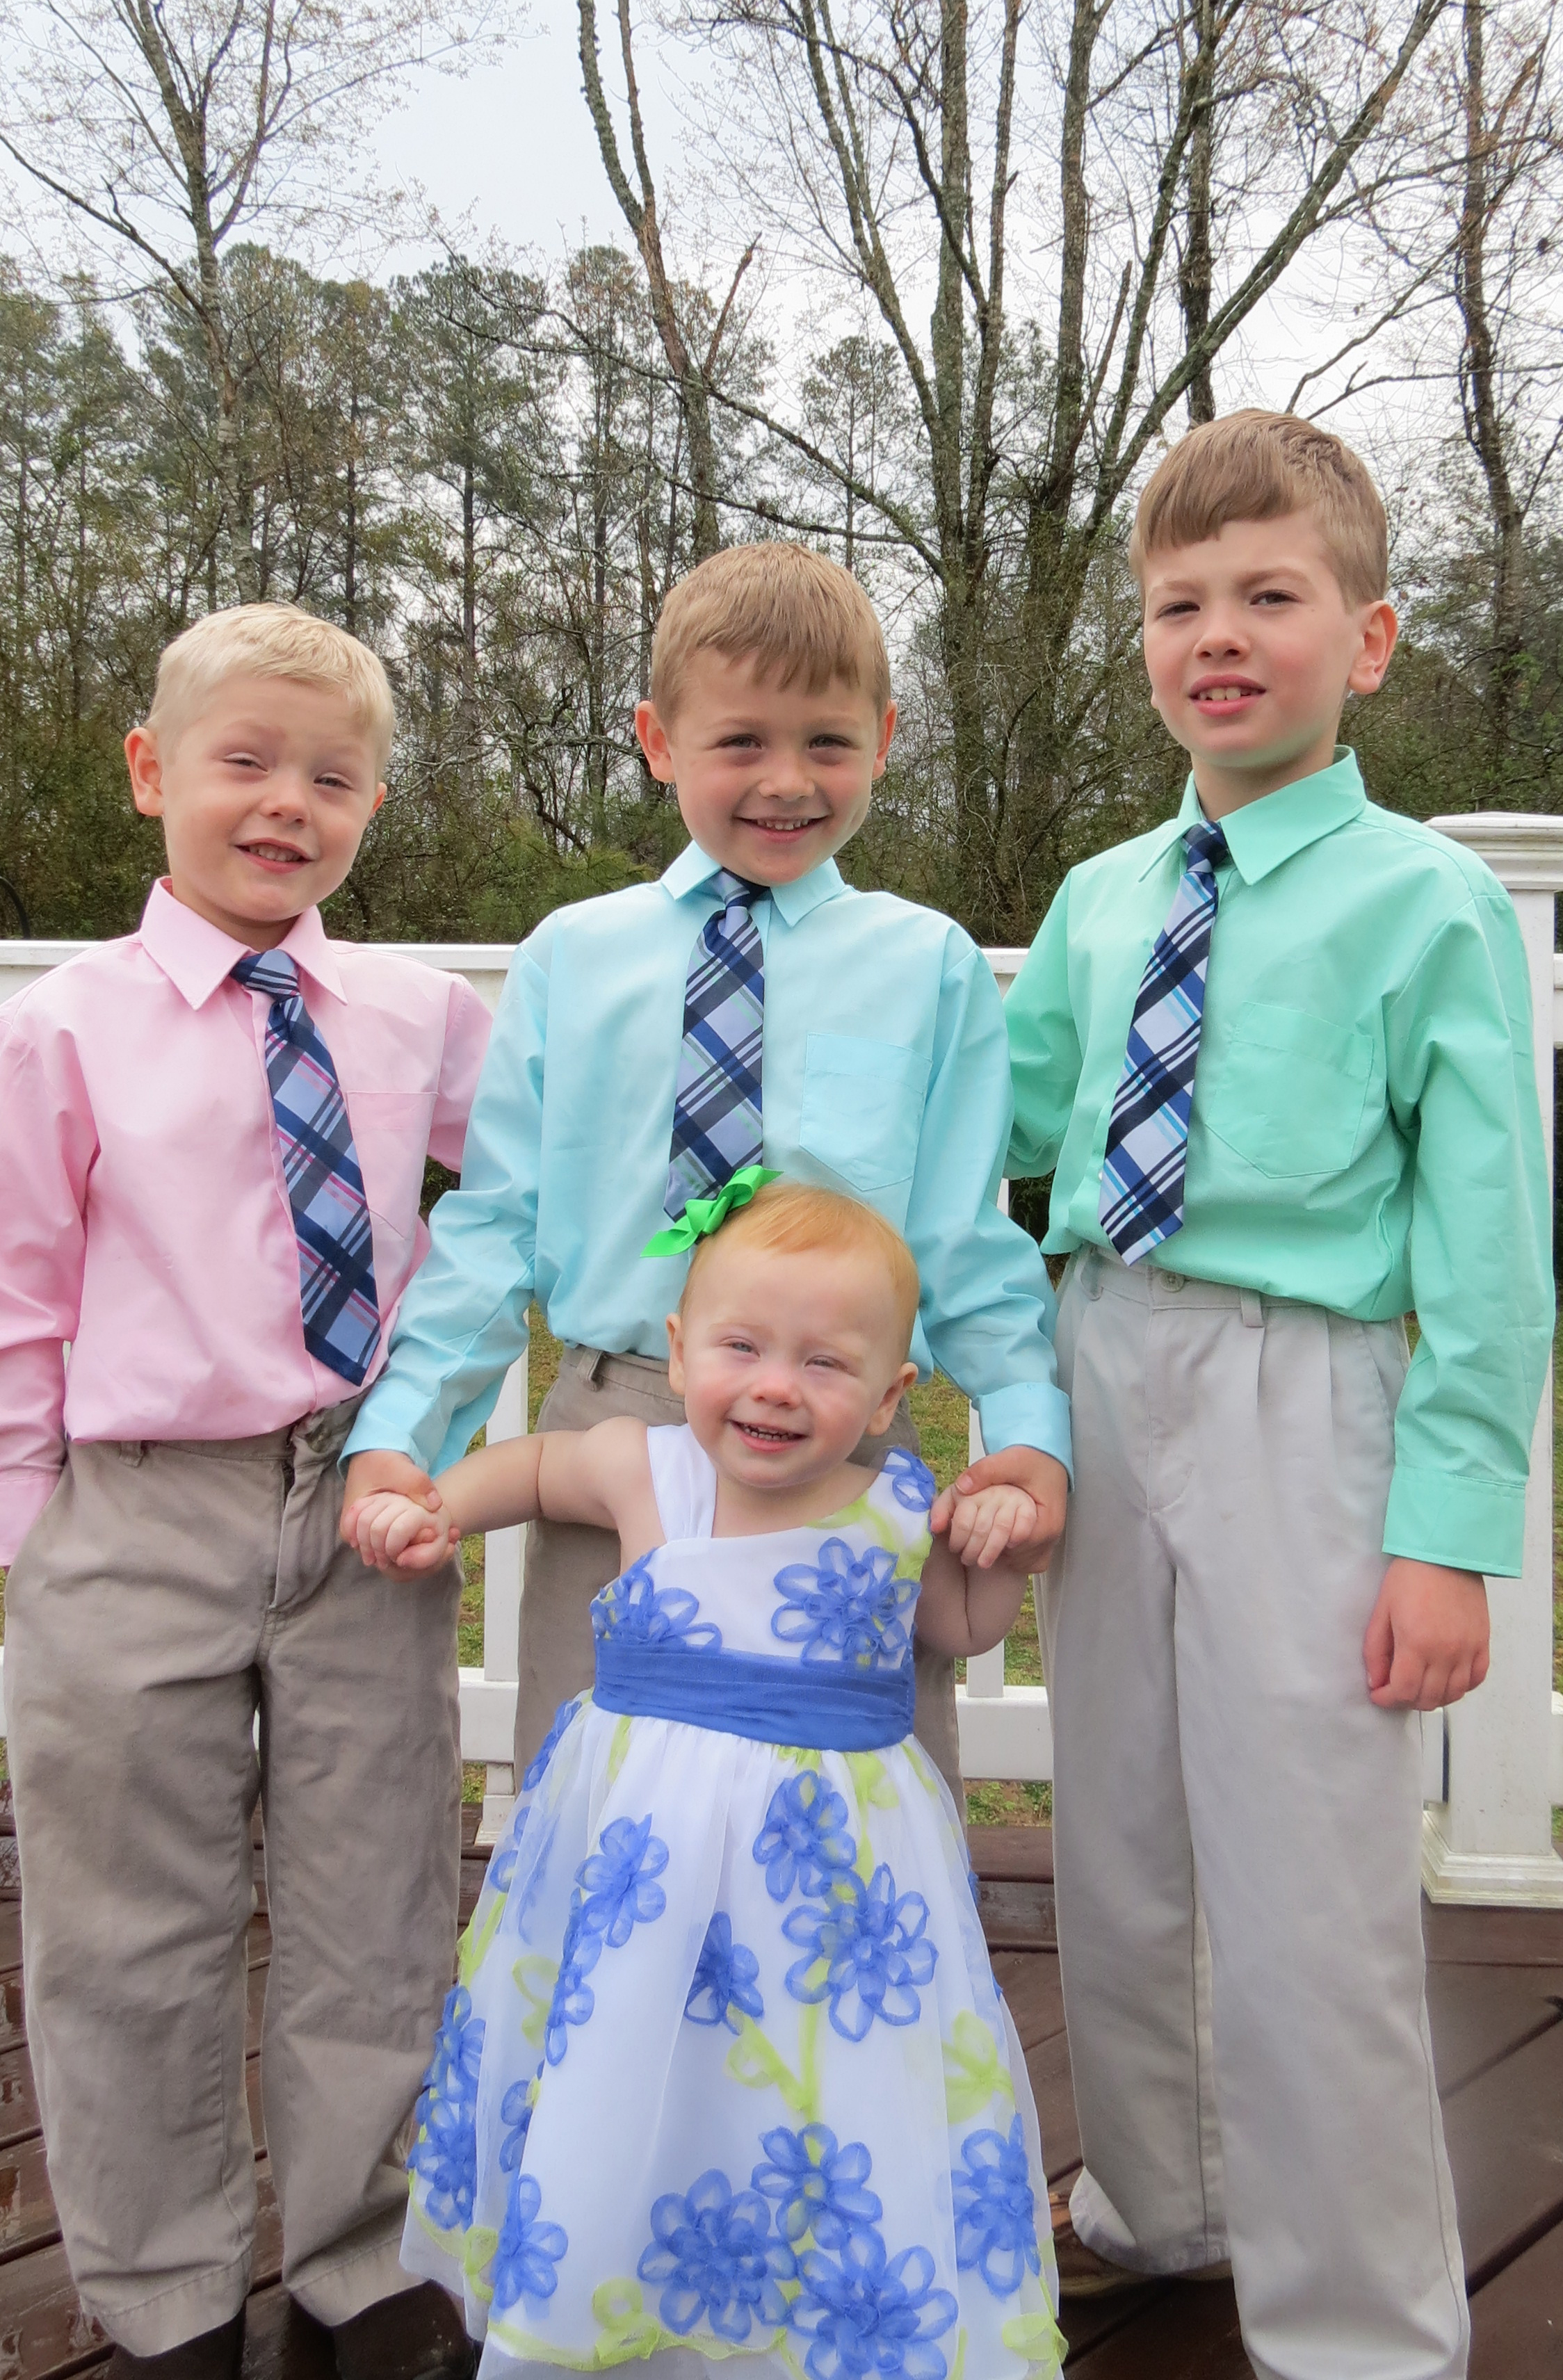 Landon with his younger brothers and sister